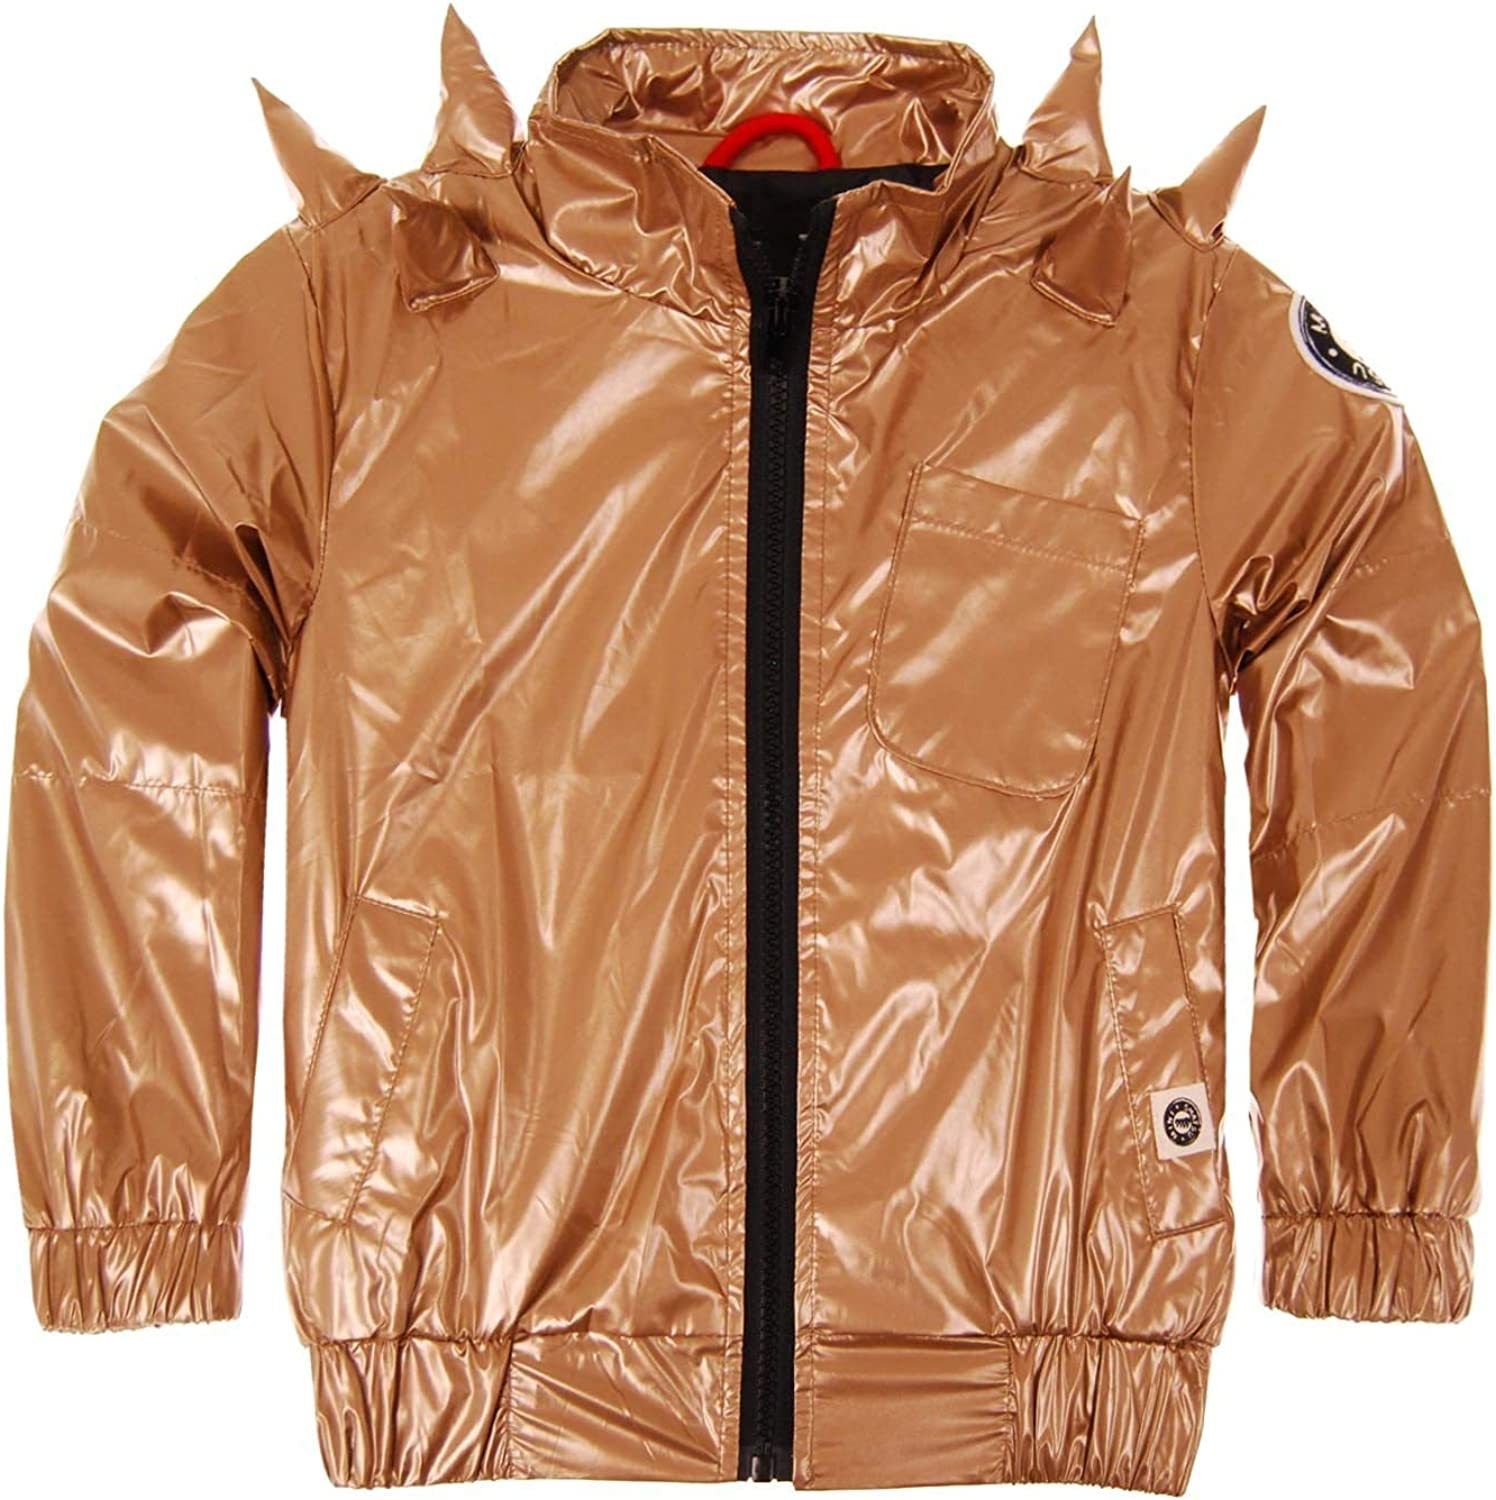 Mini Shatsu Gold Spikes Baby Windbreaker